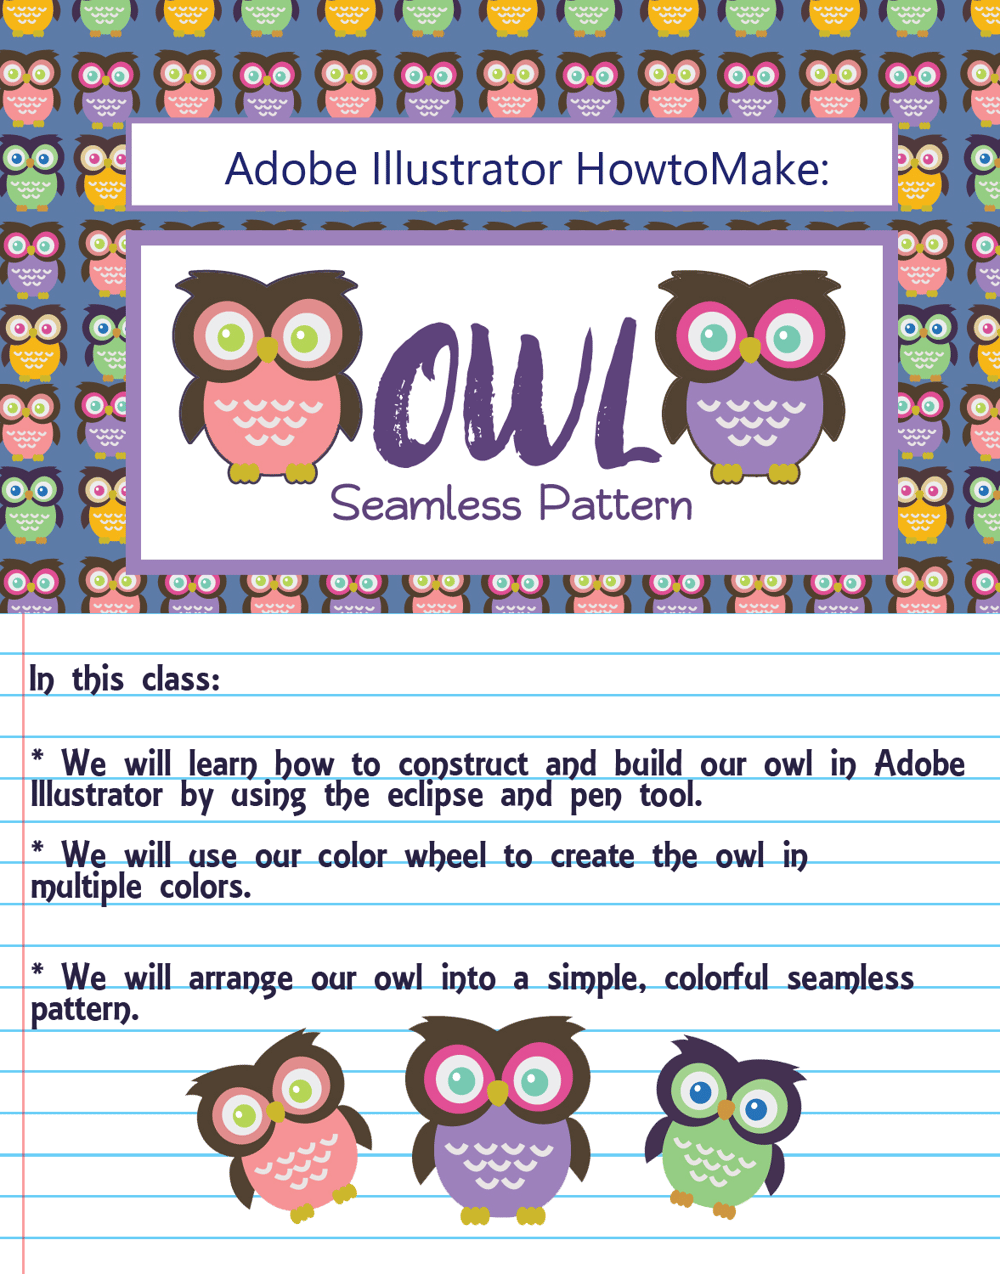 Adobe Illustrator: How to Make Seamless Owl Pattern - image 2 - student project